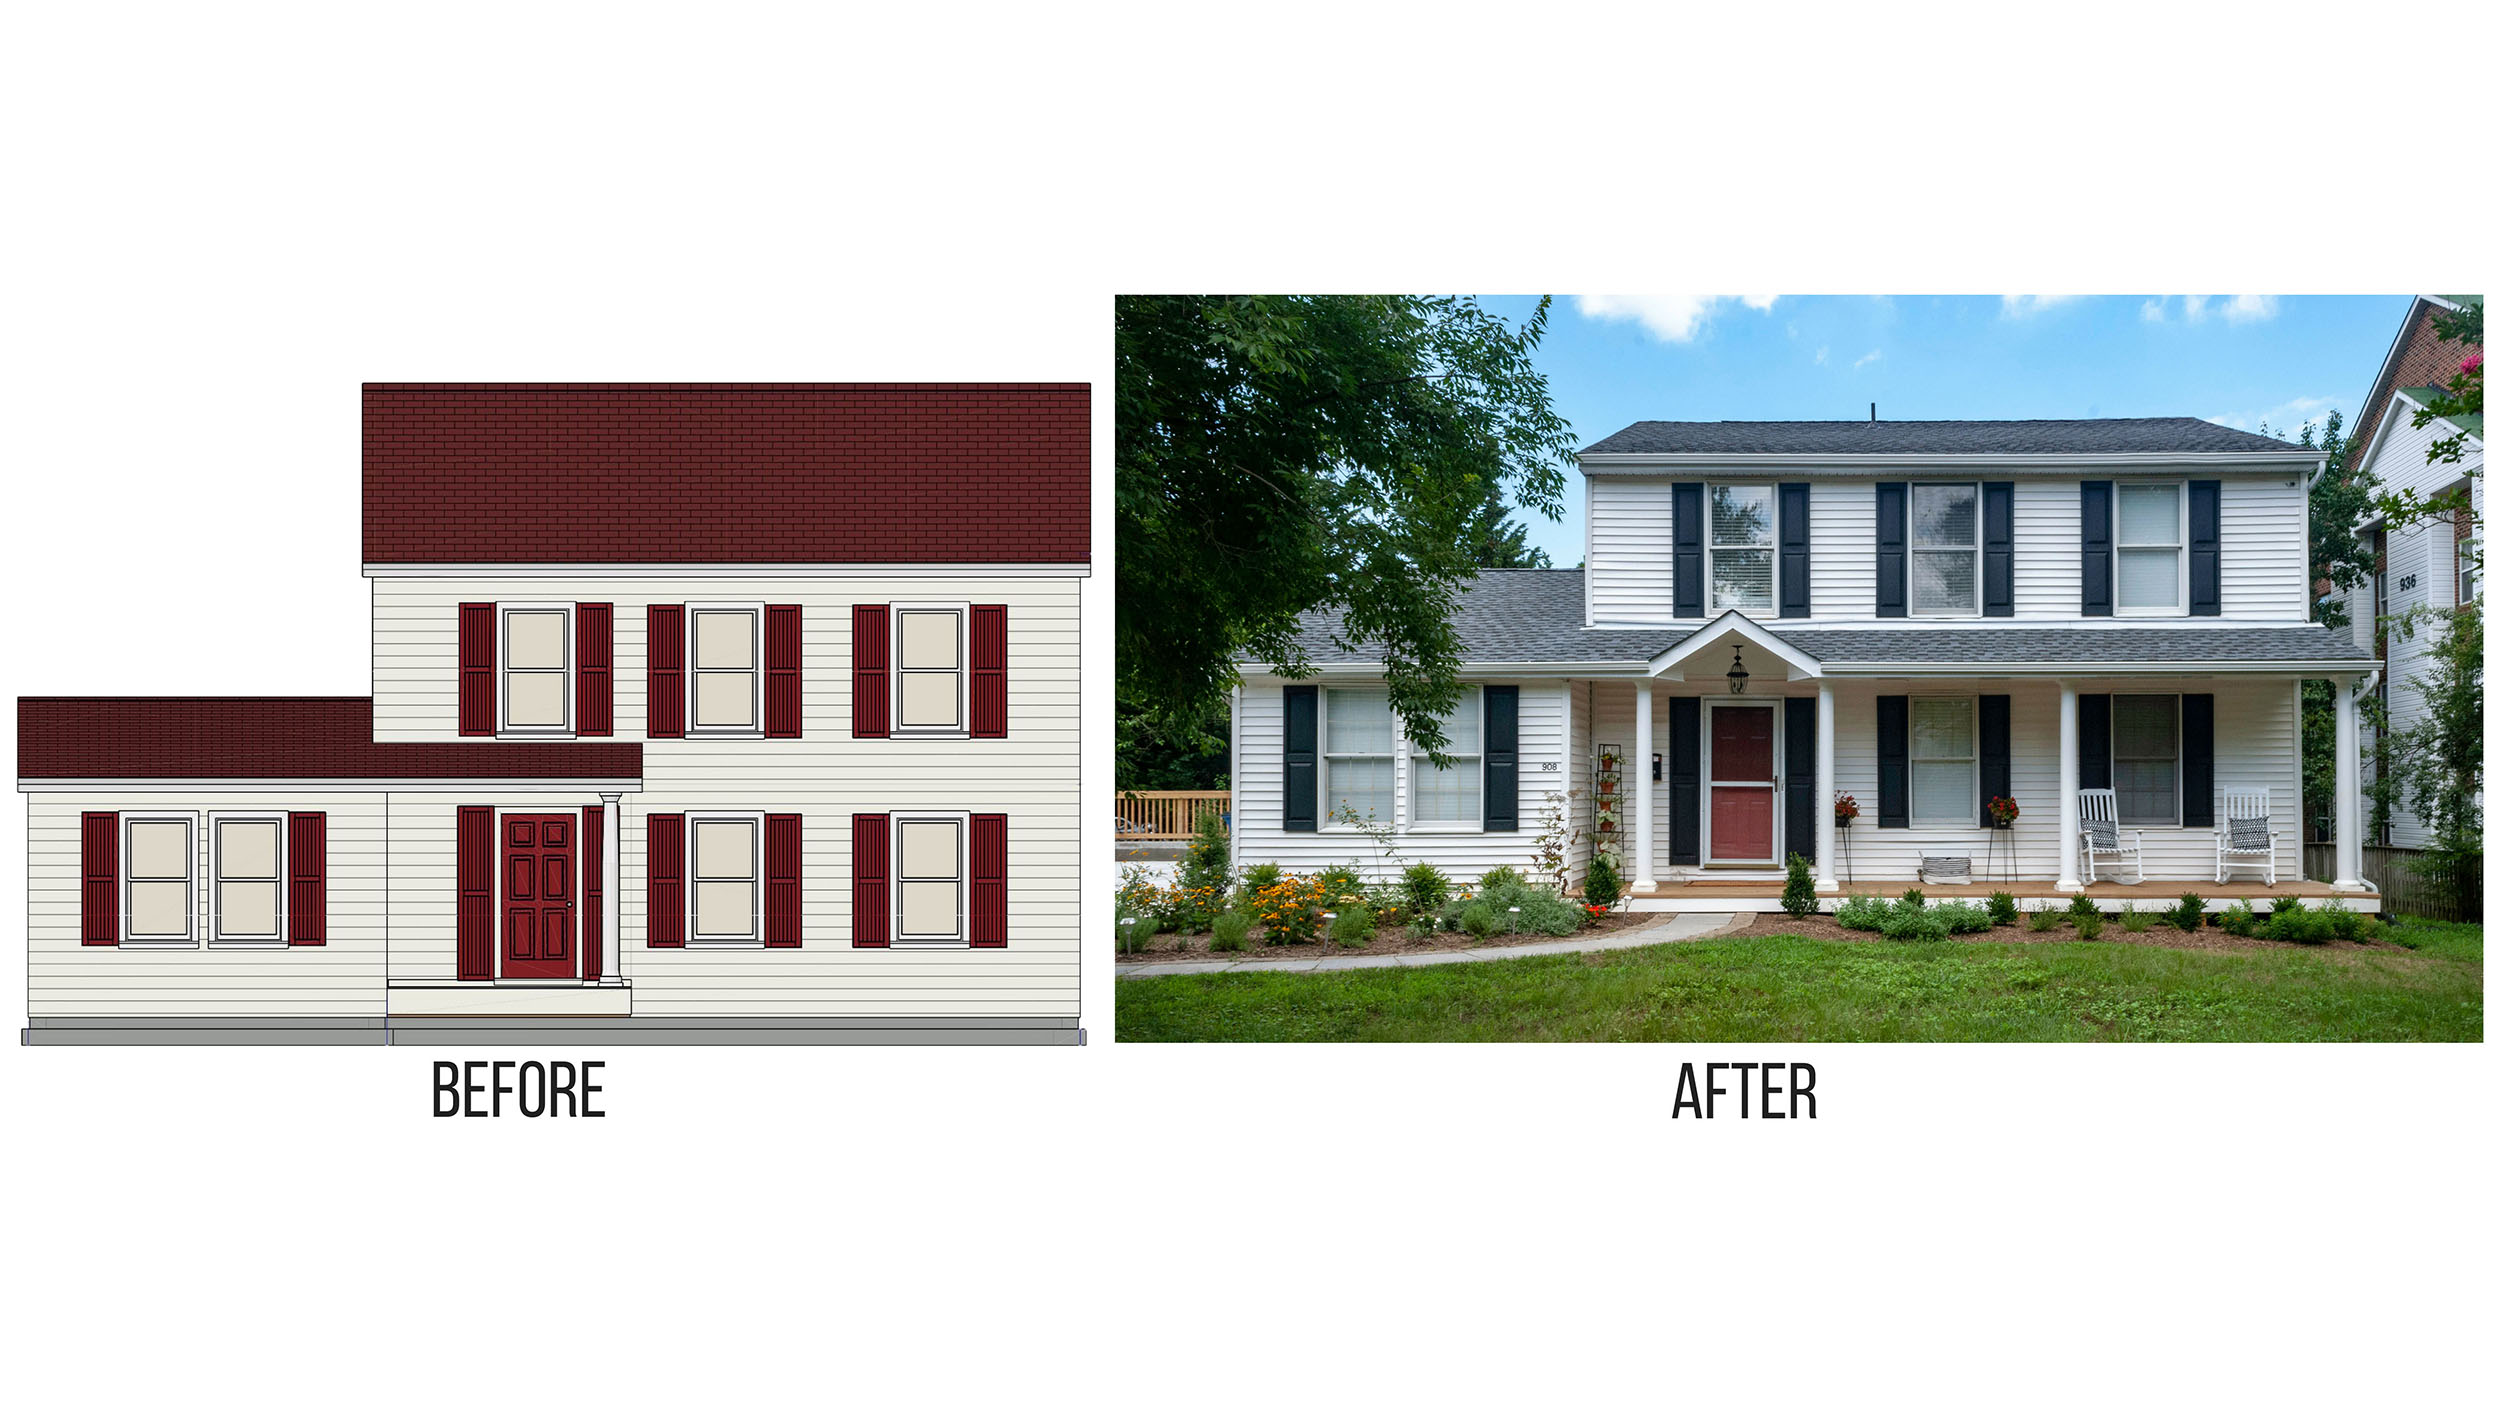 908 MADISON BEFORE AFTER COMPARISON RESIZE169.jpg